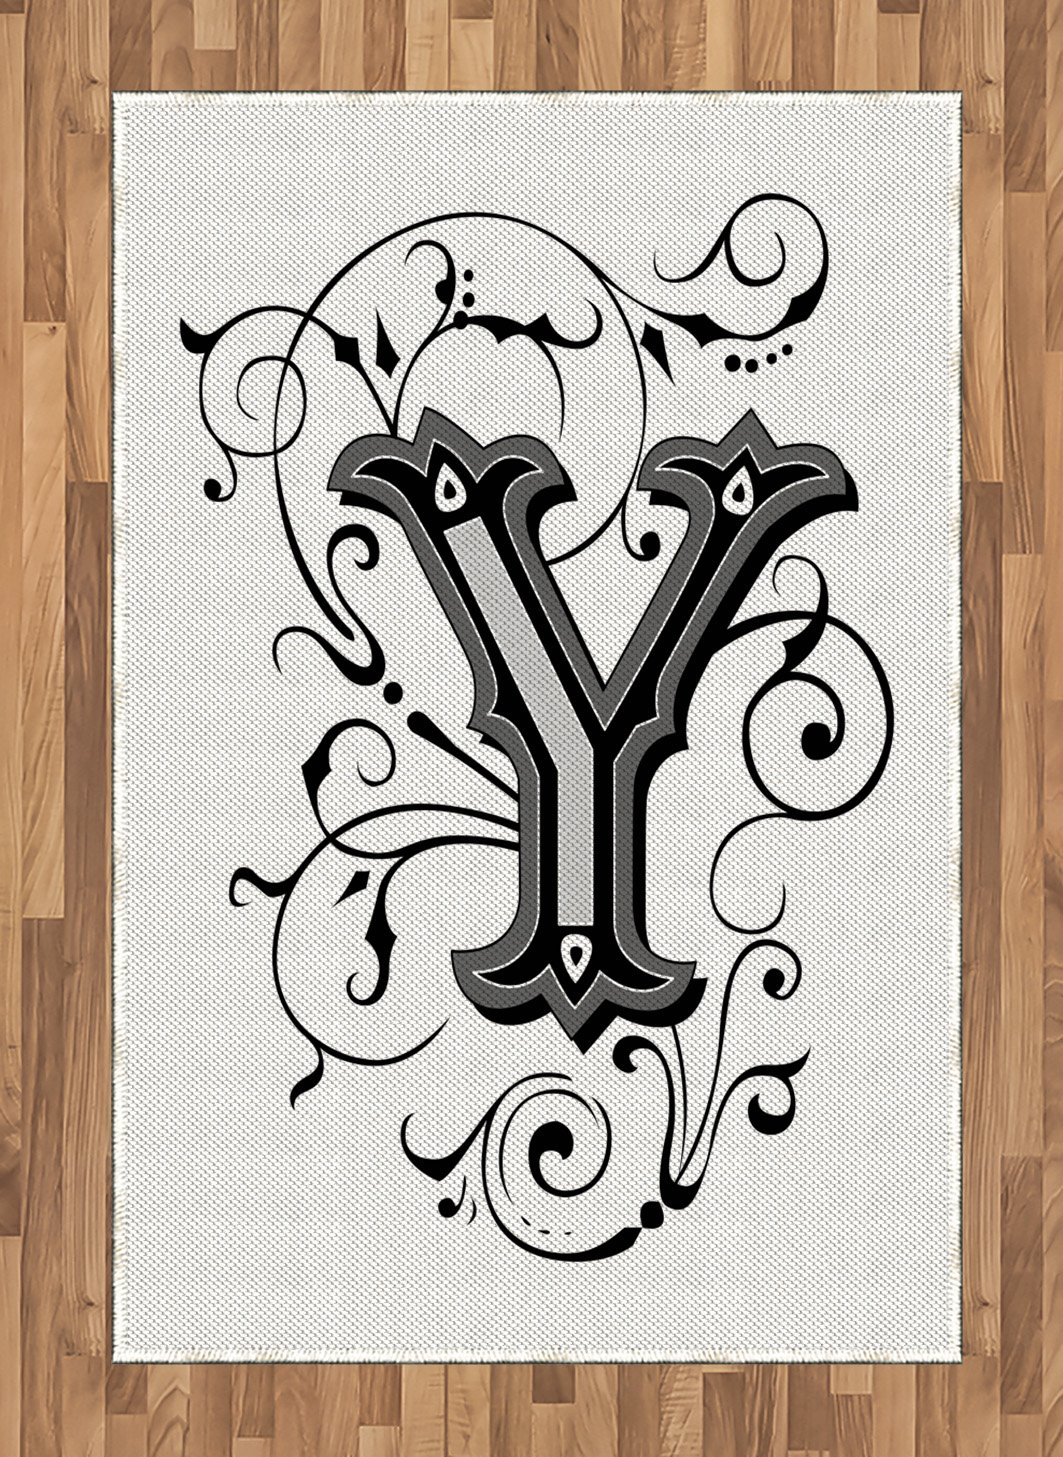 Amazon.com: Ambesonne Letter Y Area Rug, Calligraphy Inspired